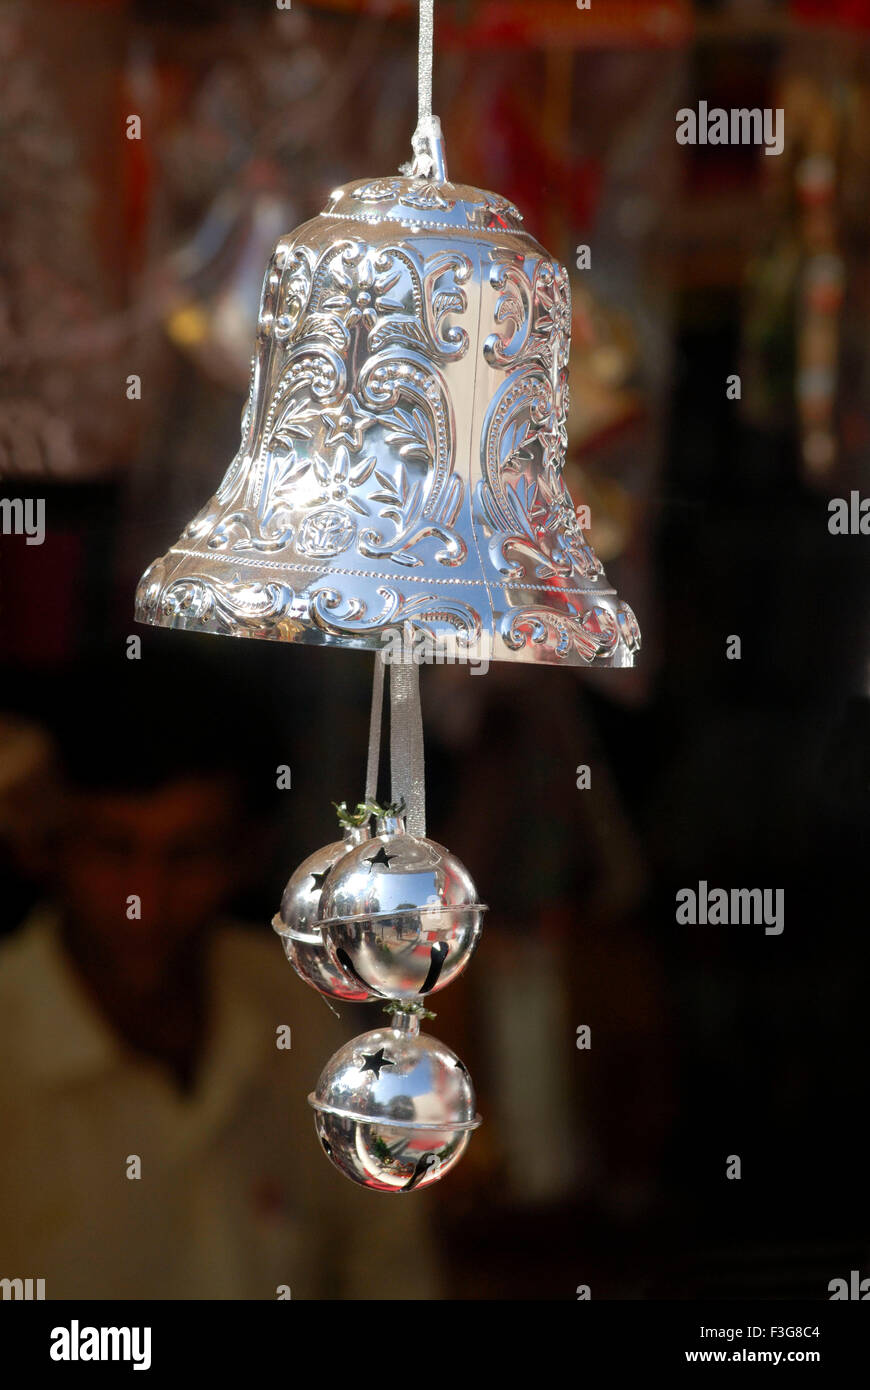 A shining Silver coloured Christmas bell kept for sell in shop at Borivali ; Bombay now Mumbai ; Maharashtra ; India - Stock Image